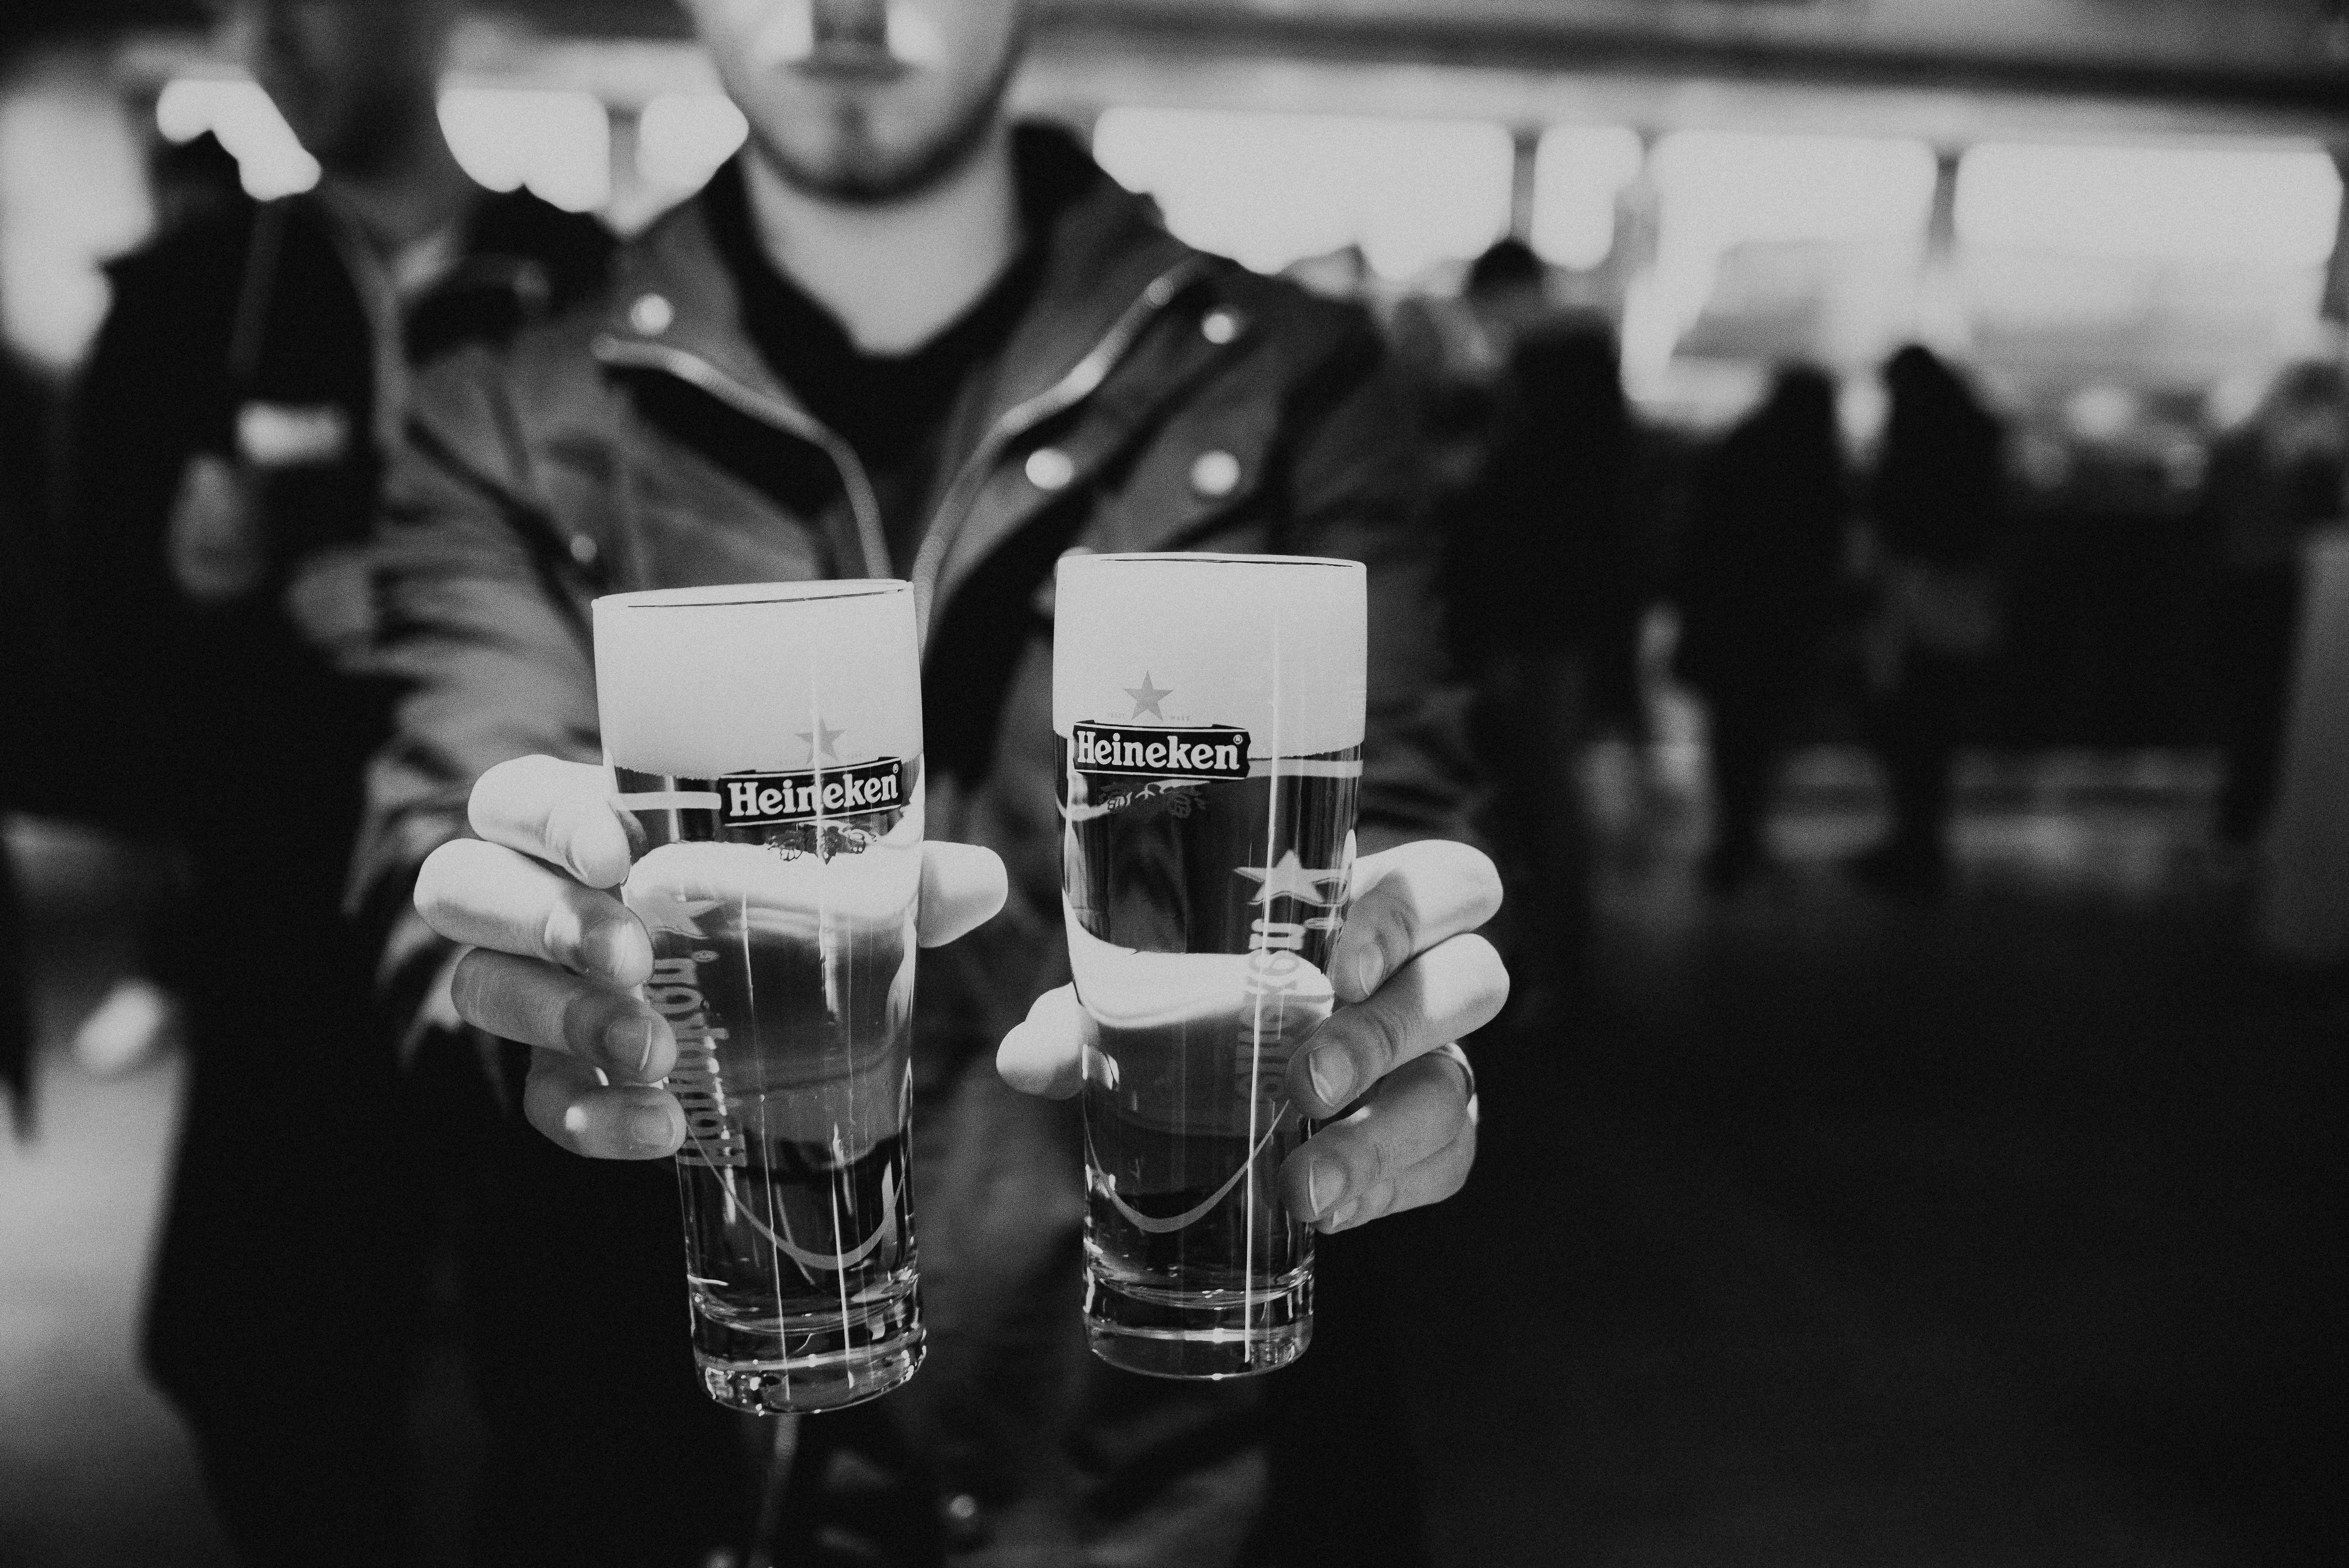 Macro view of a man holding Heineken glass cups with Heineken experience in black and white